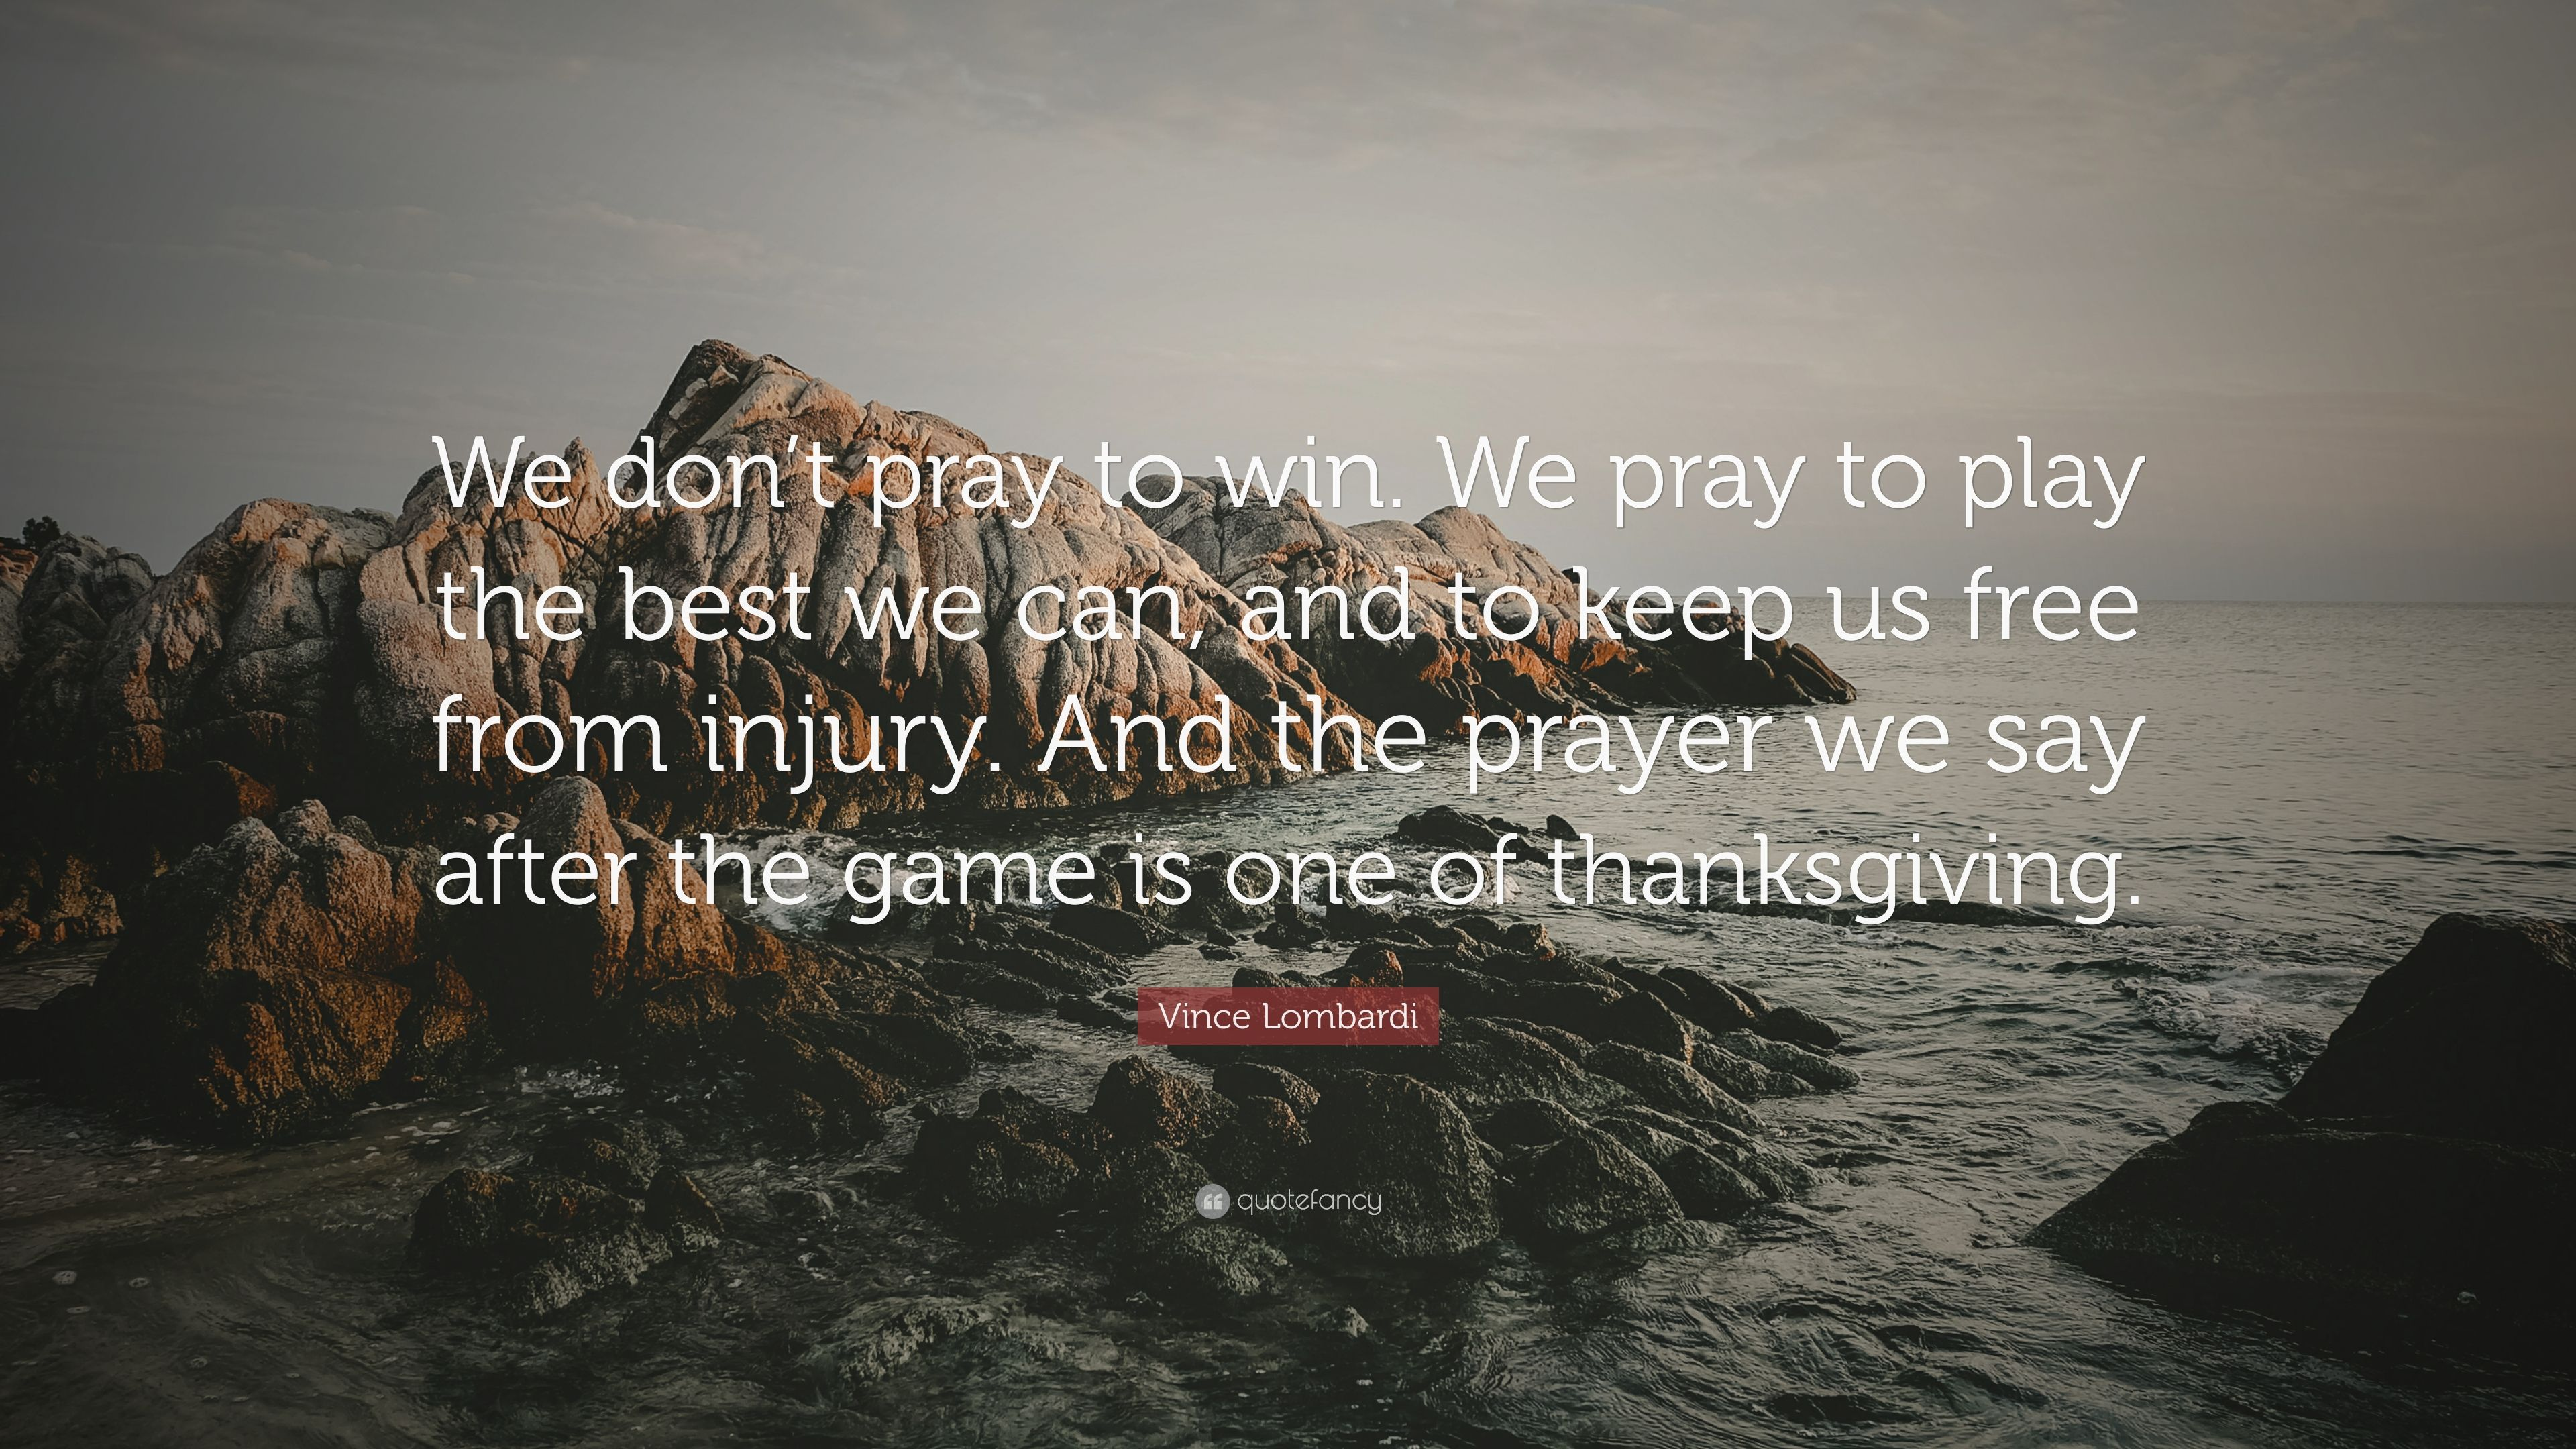 Vince Lombardi Quote We Don T Pray To Win We Pray To Play The Best We Can And To Keep Us Free From Injury And The Prayer We Say After The 7 I am always looking for new ways to encourage kids to pray, especially to activities, crafts, coloring, games, puzzles, worksheets for prayers or scripture. vince lombardi quote we don t pray to